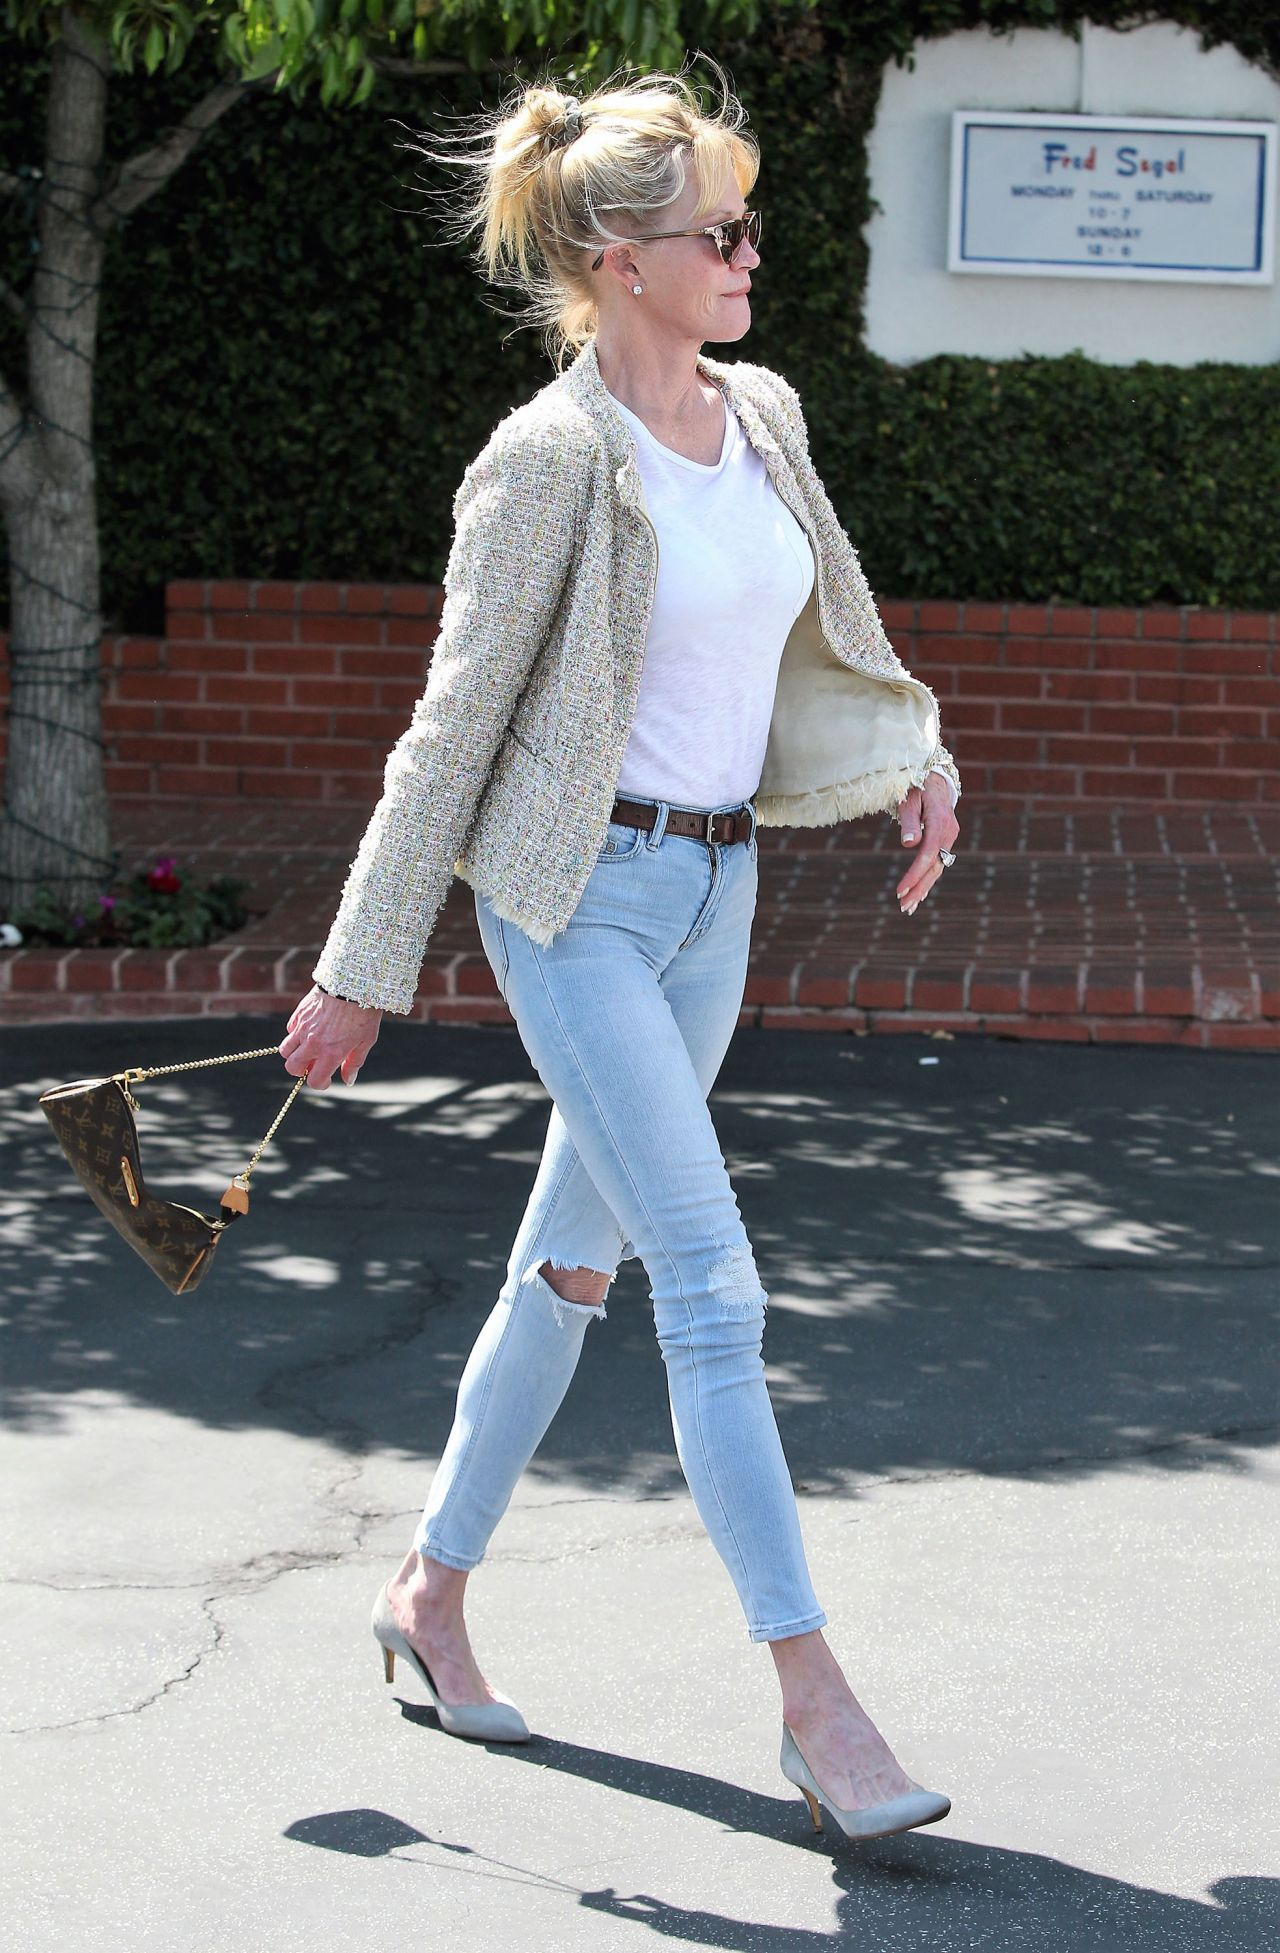 Melanie Griffith Spring Ideas Shops At Fred Segal In LA